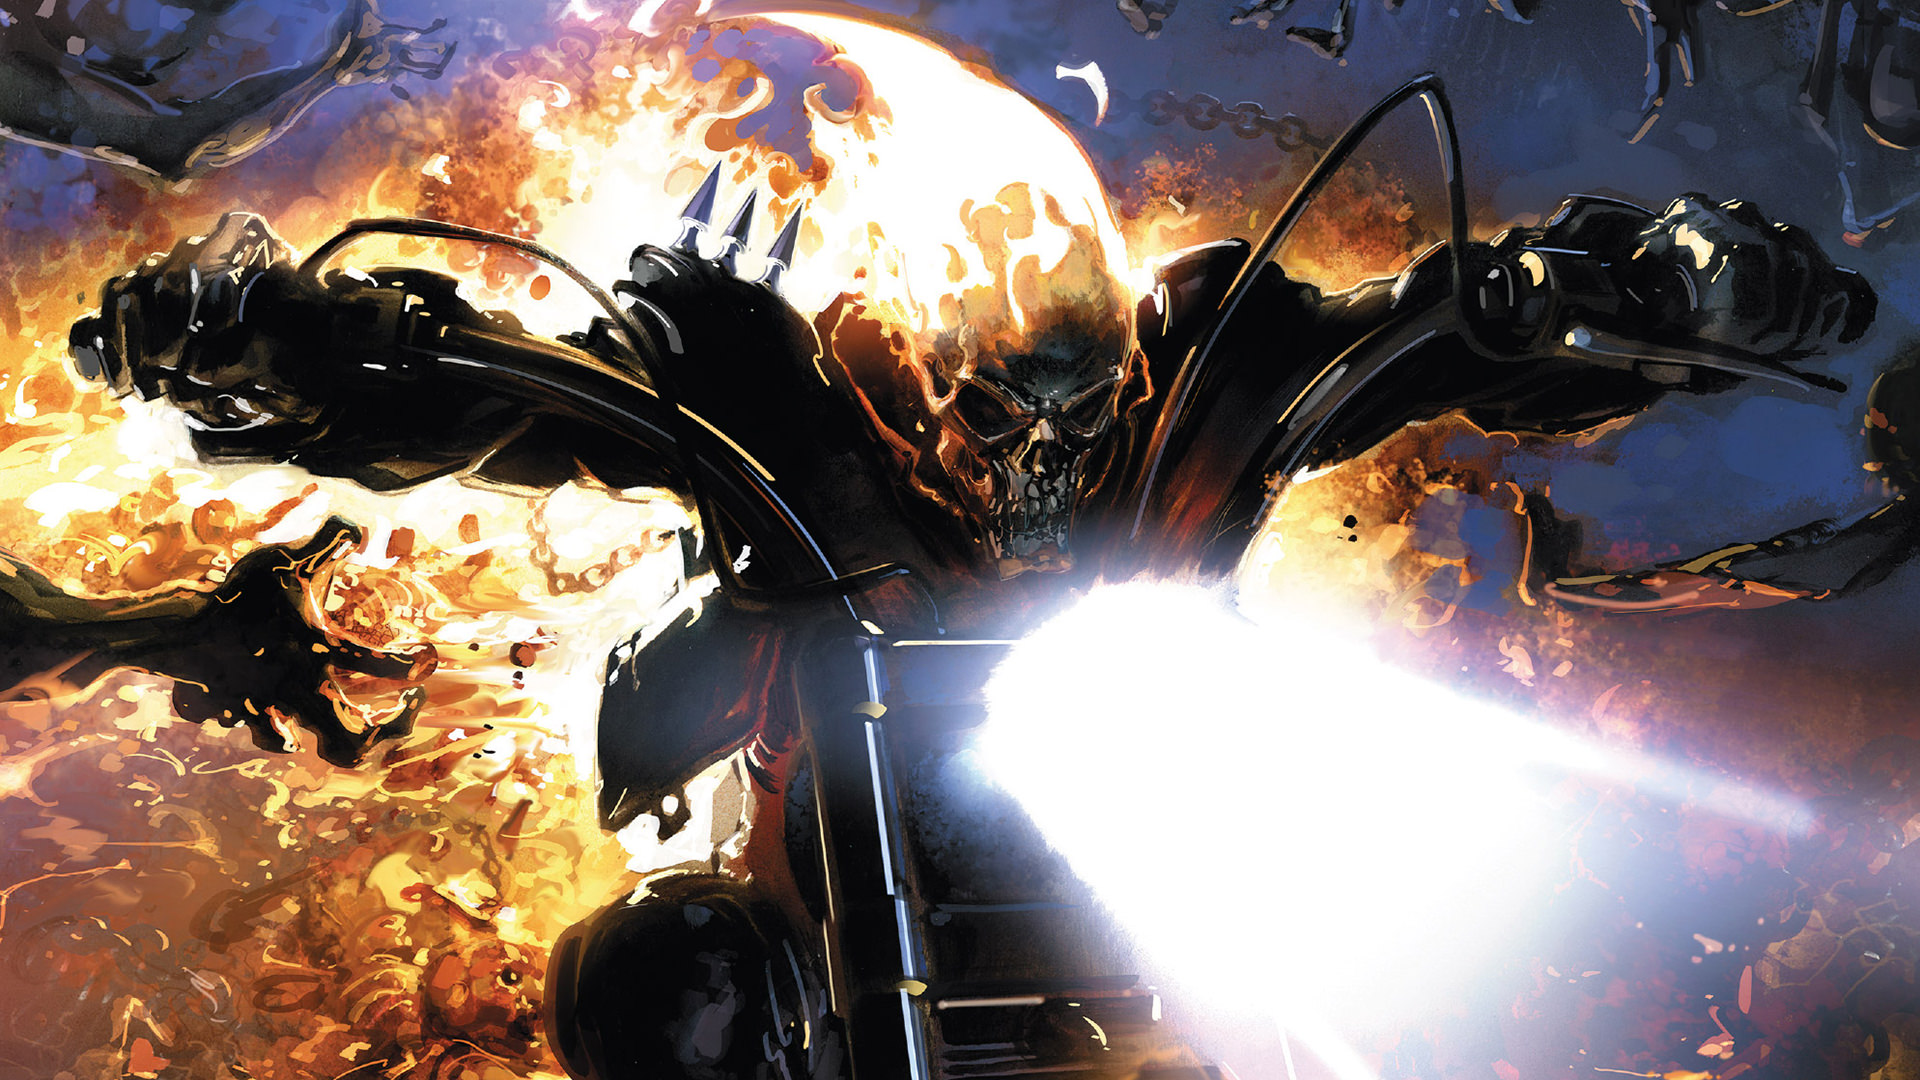 ghost rider in the flames.jpg